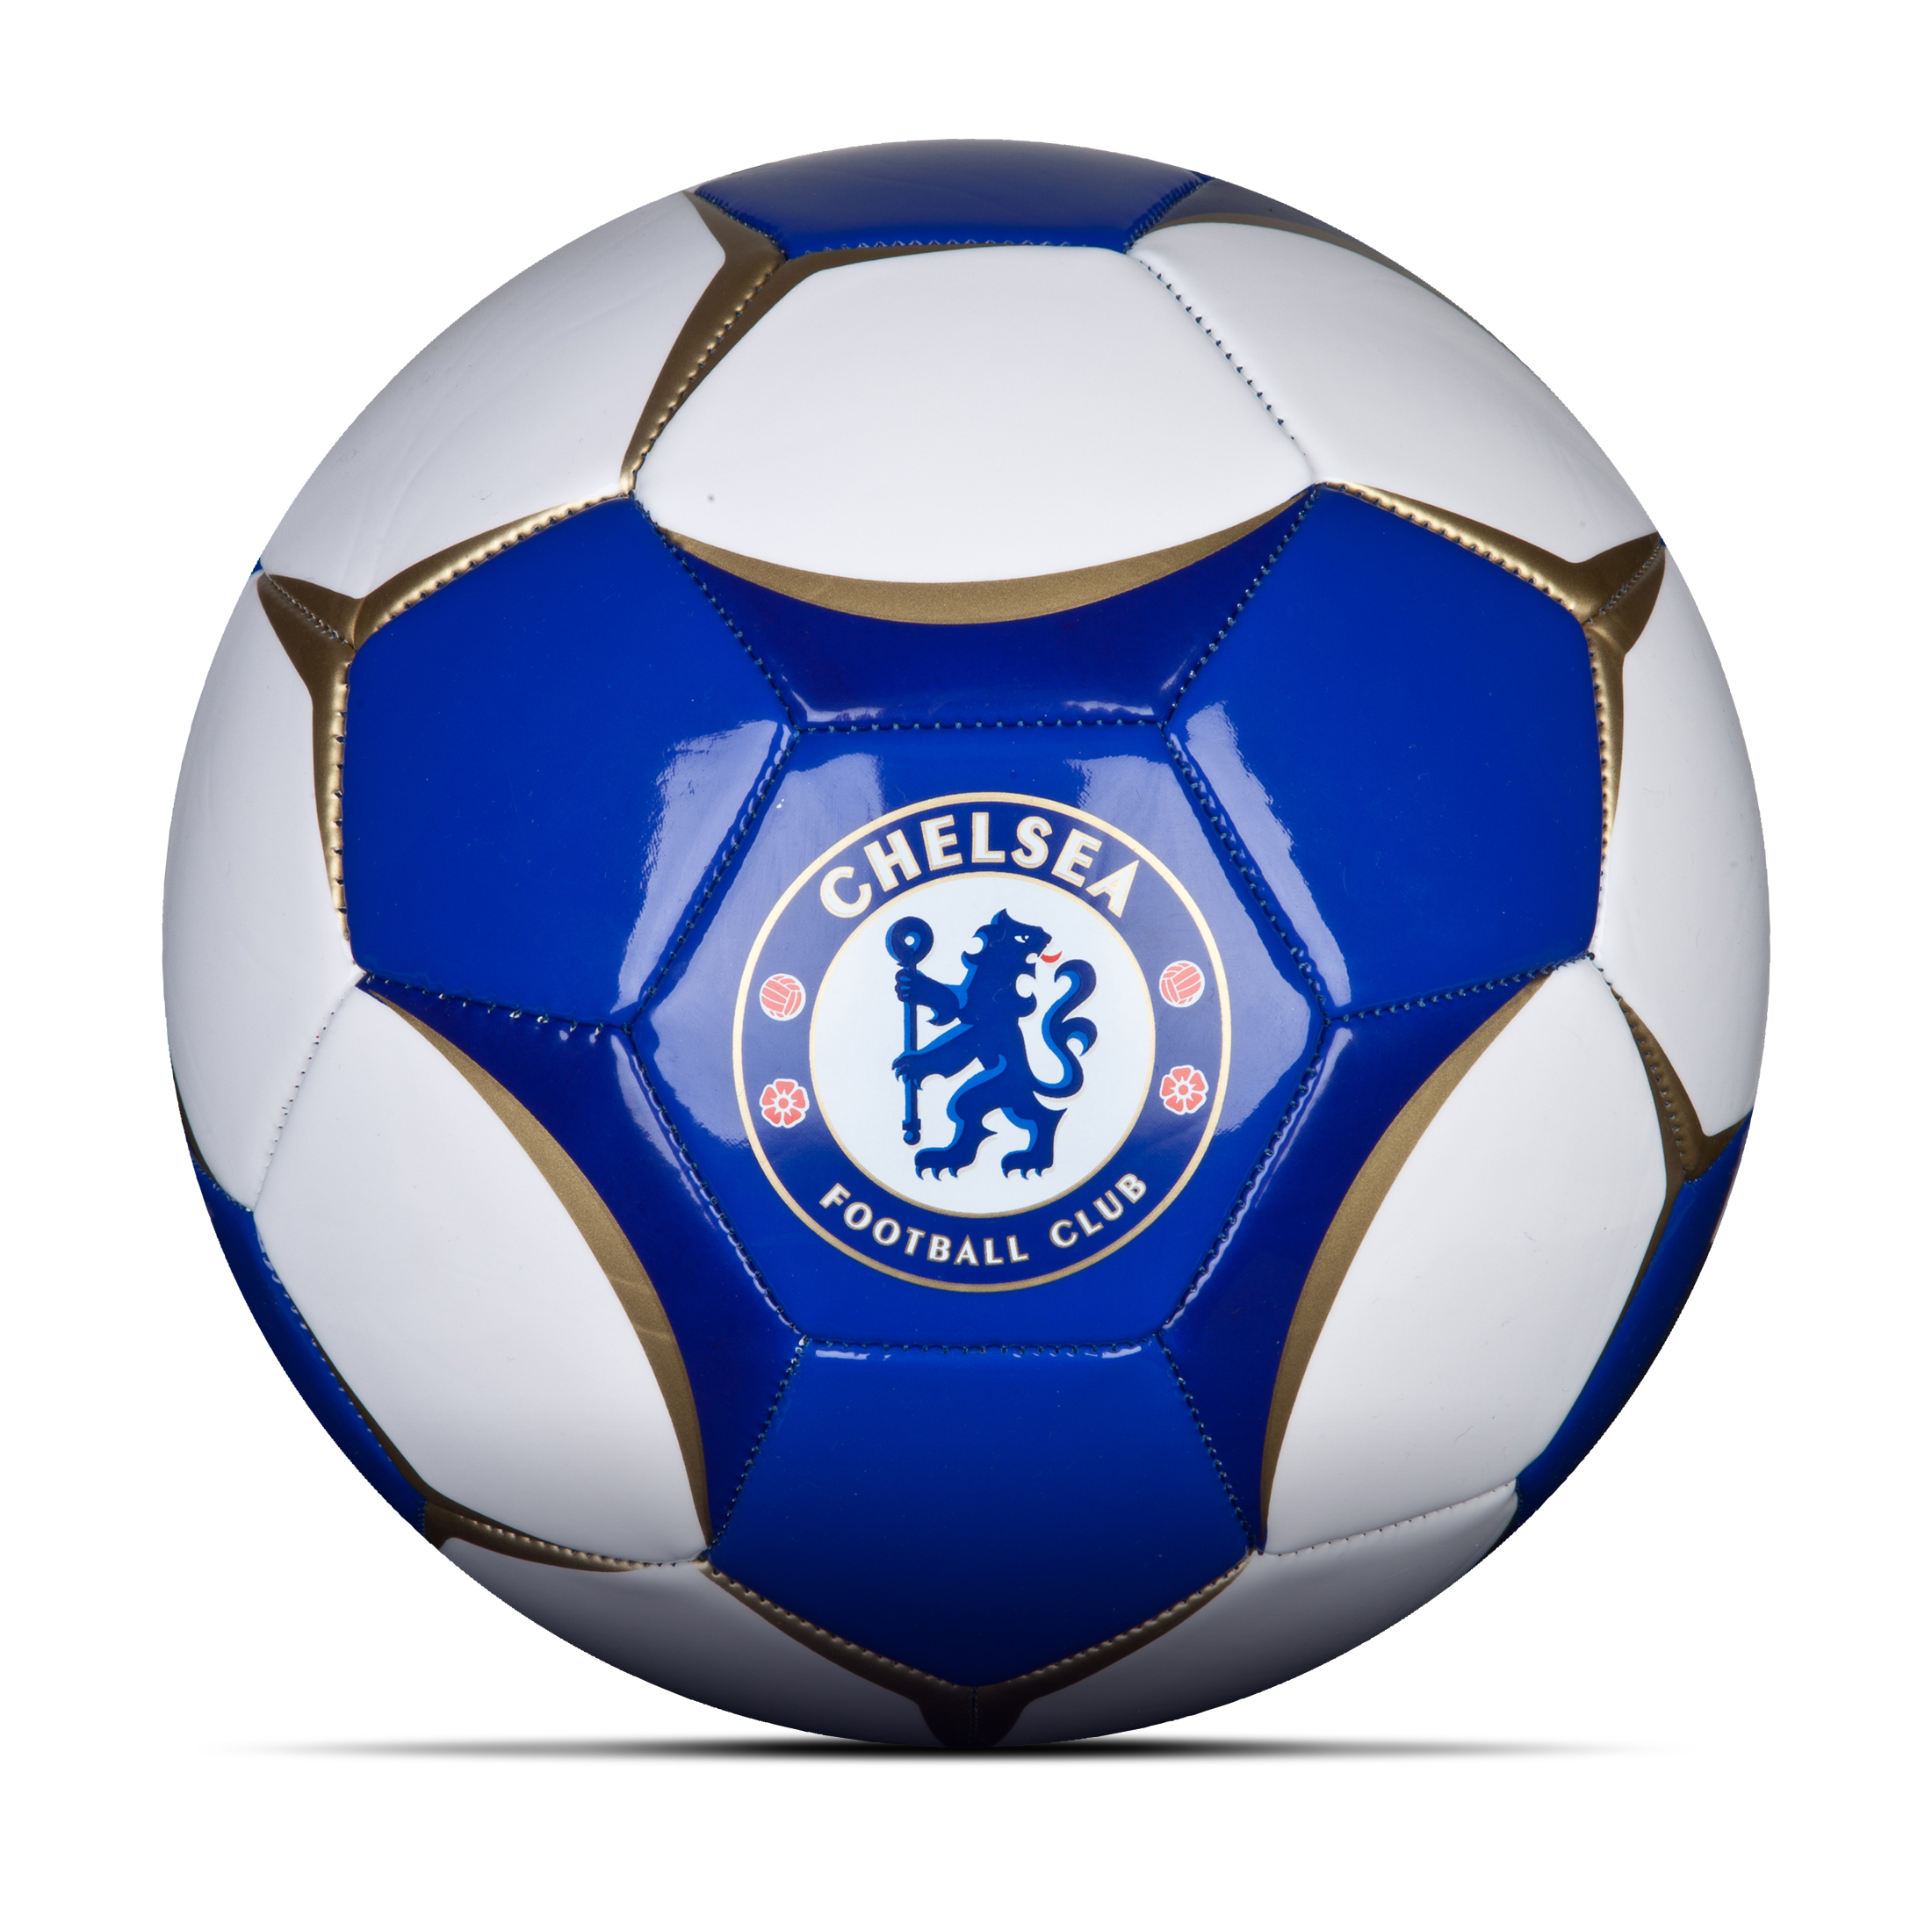 Chelsea Shield Football - Size 5